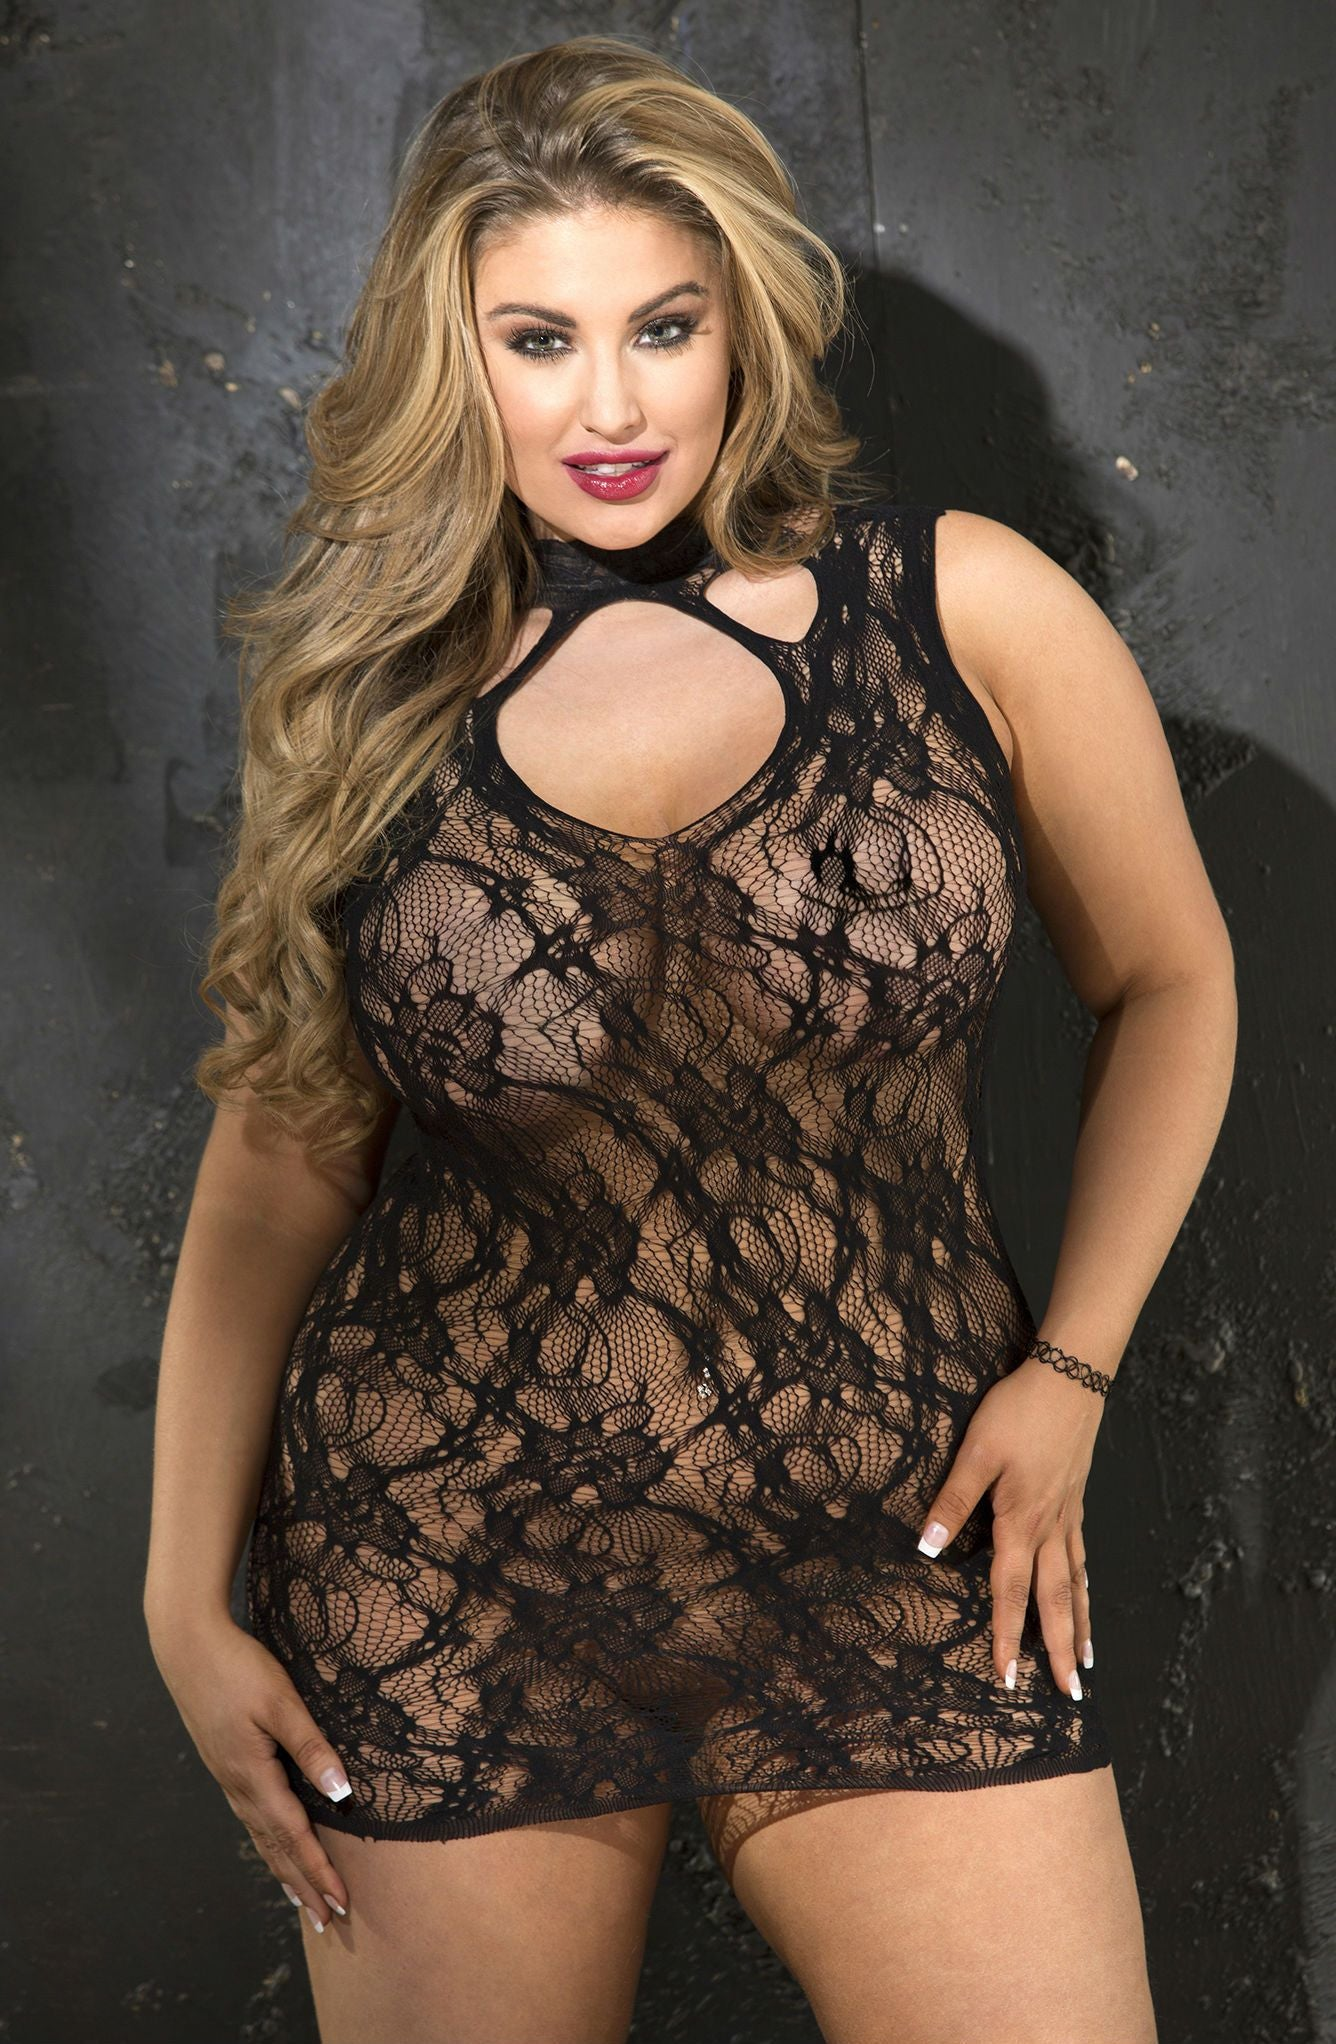 Chemise Black - Black / One Size (Plus) - Lingerie Best